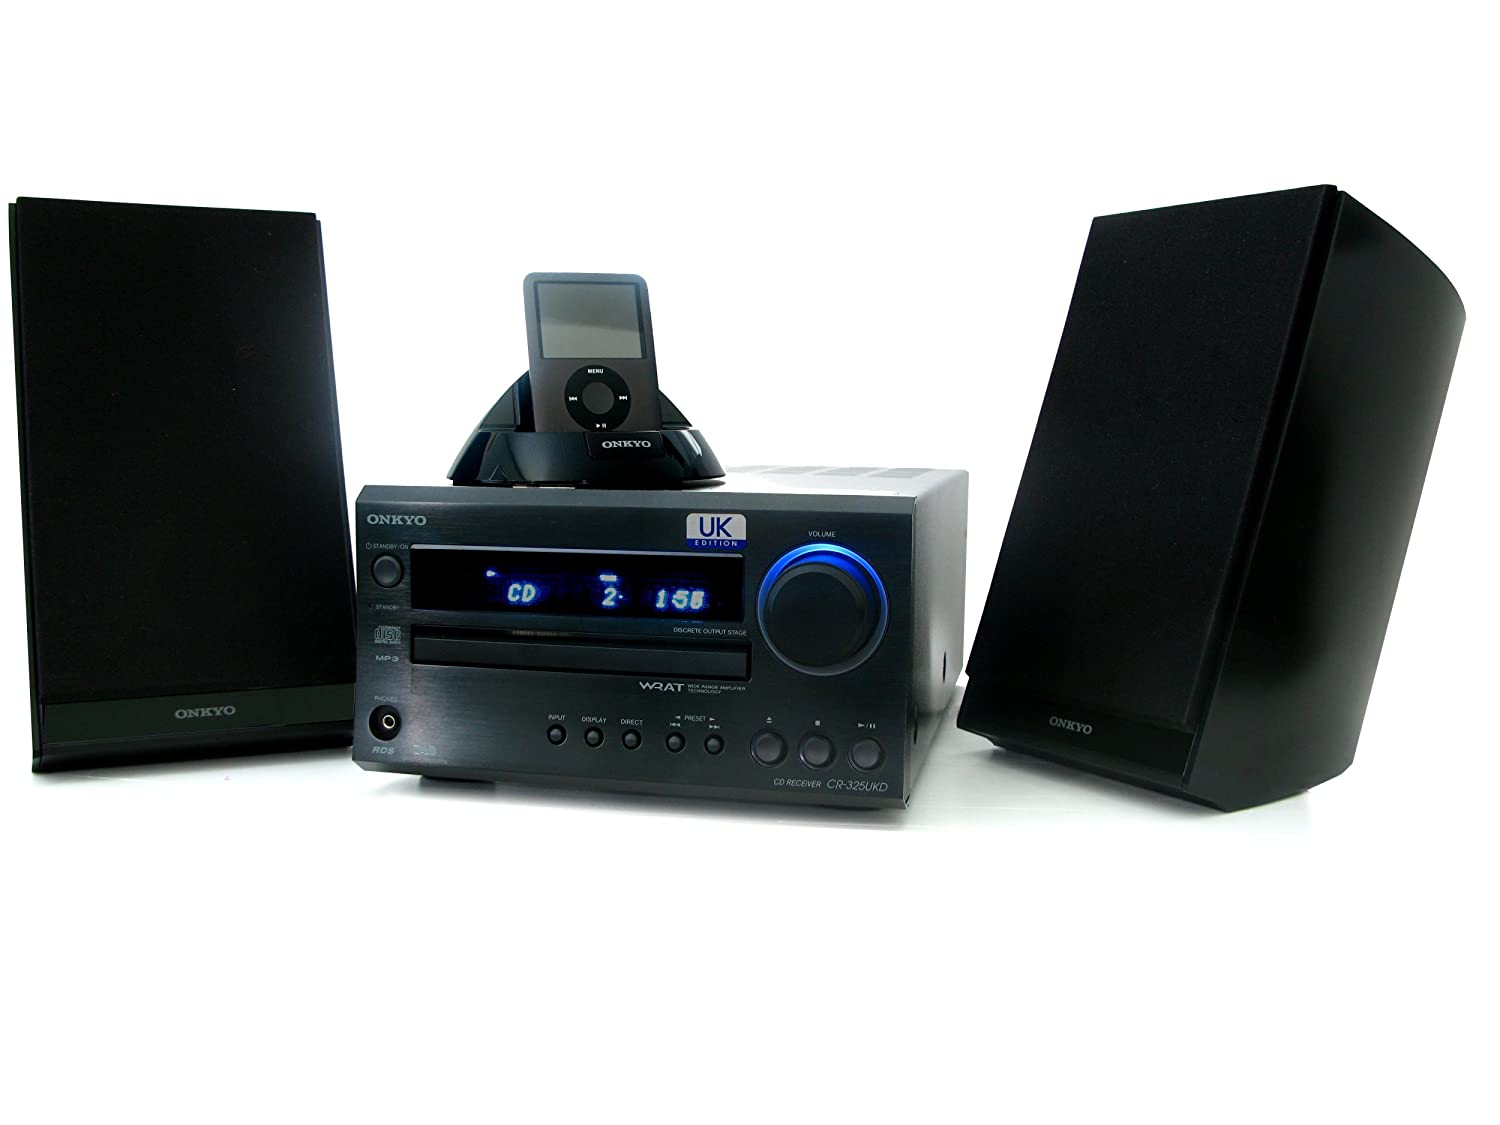 onkyo mini stereo system. onkyo cs-325uk b mini hi fi with dab/cd/ipod dock: amazon.co.uk: electronics stereo system